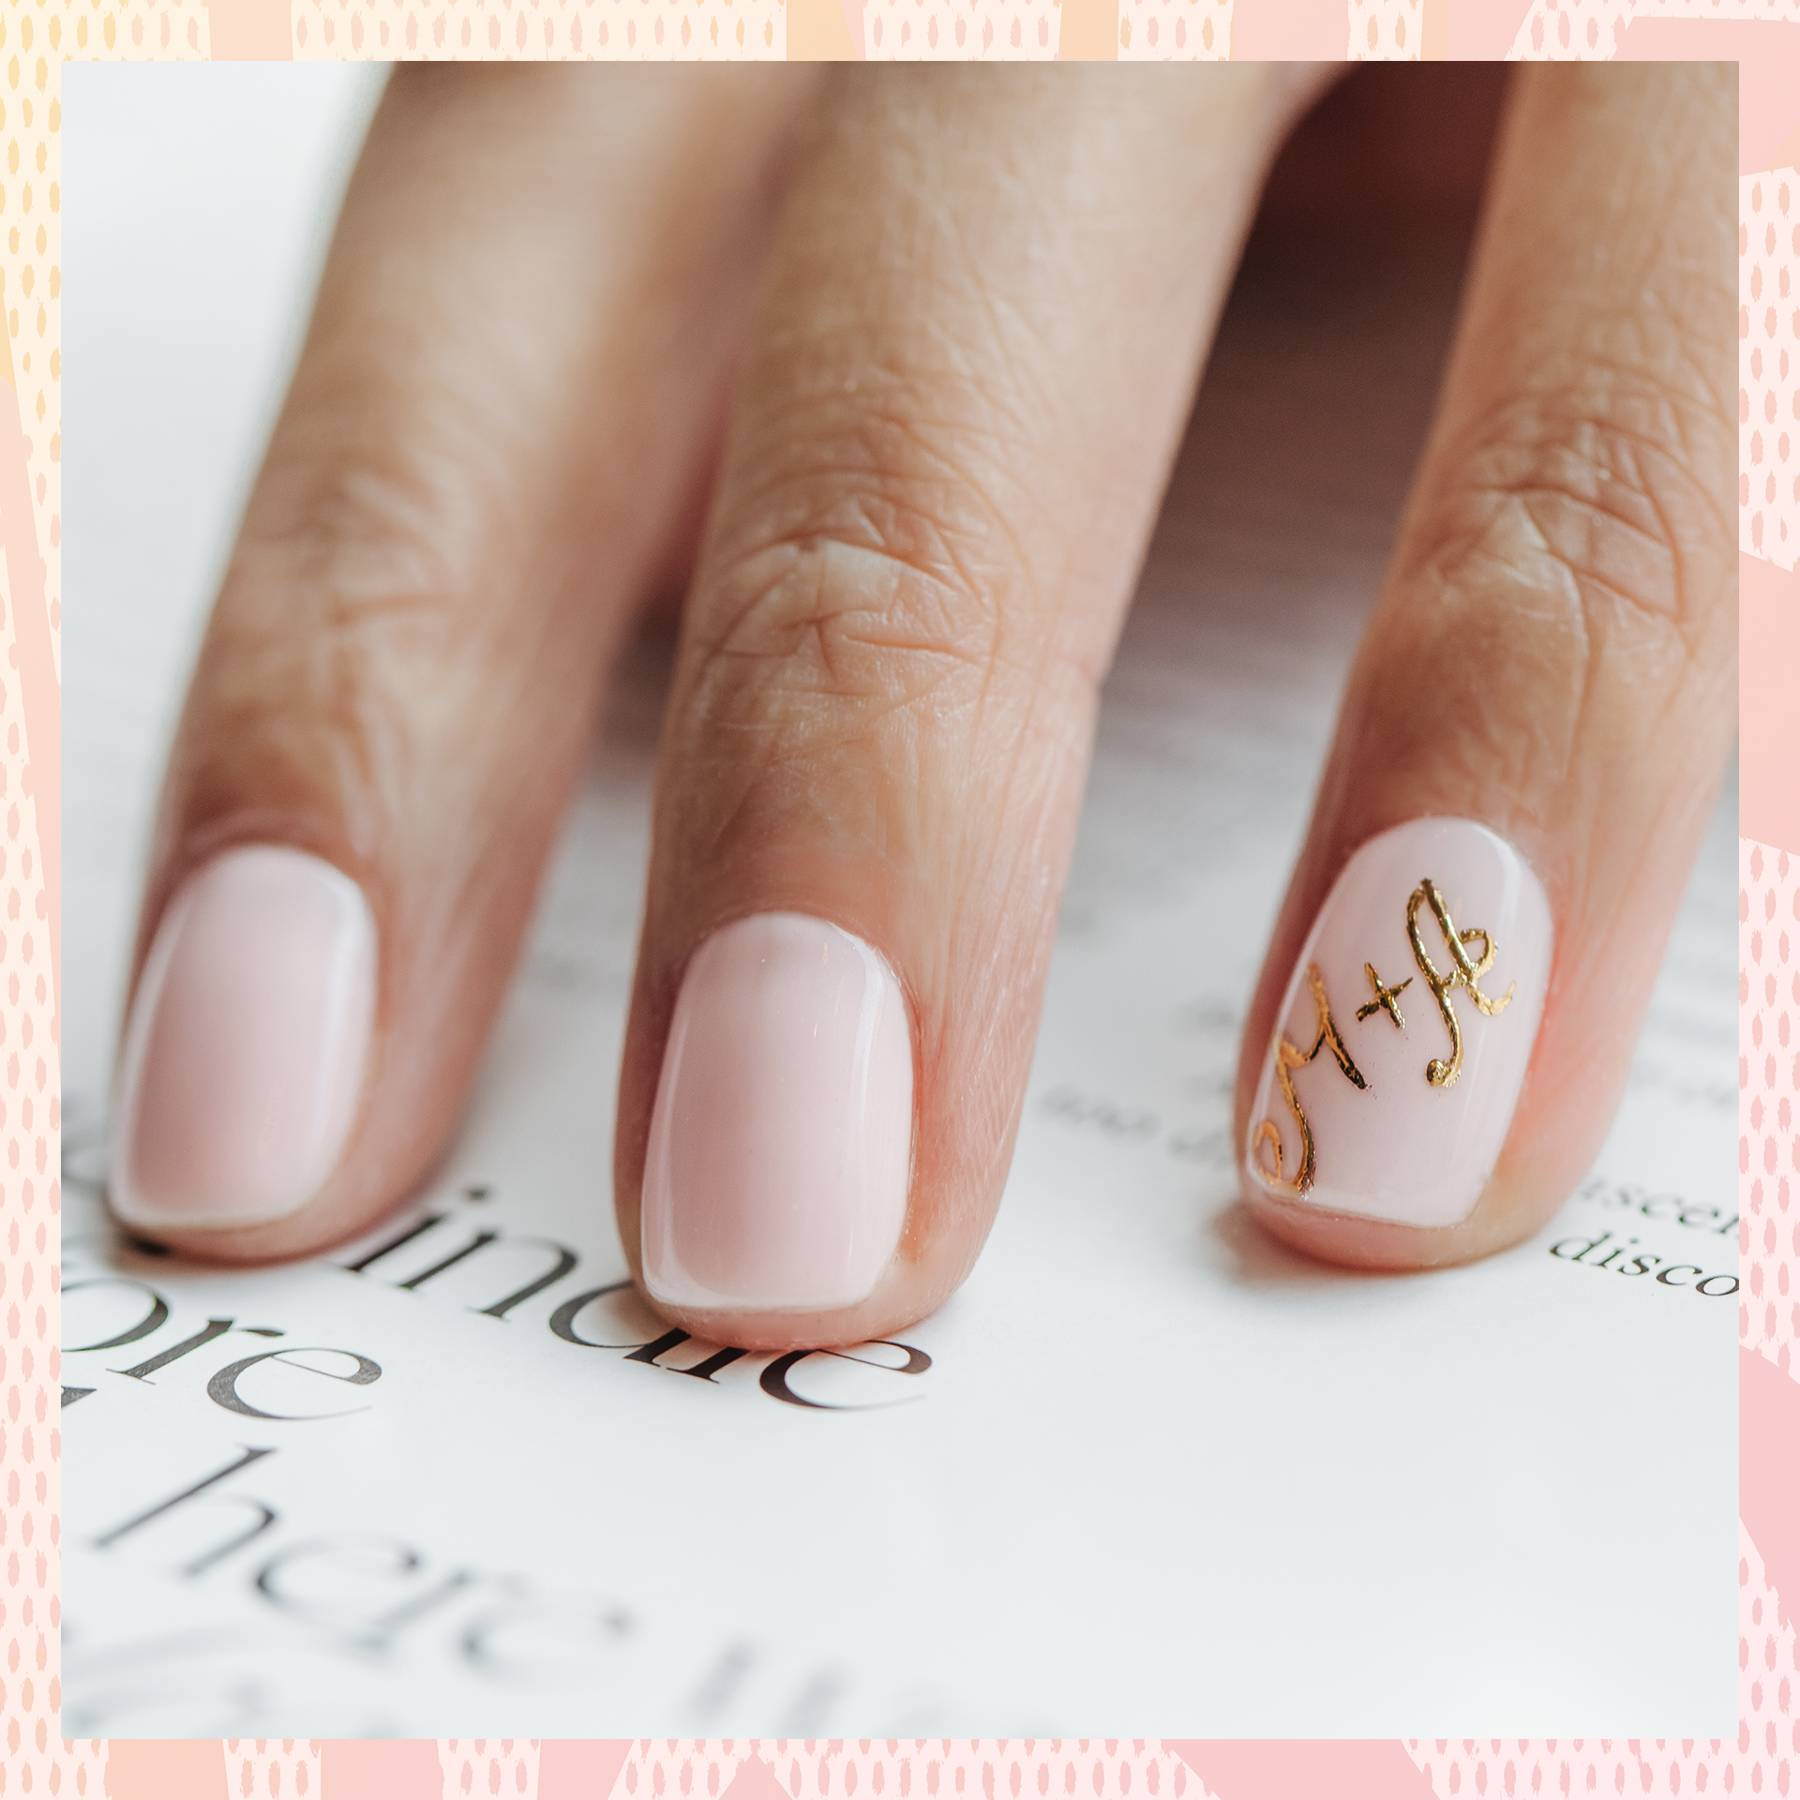 Wedding Nails: Beautiful Nail Art Ideas For Your Big Day   Glamour UK